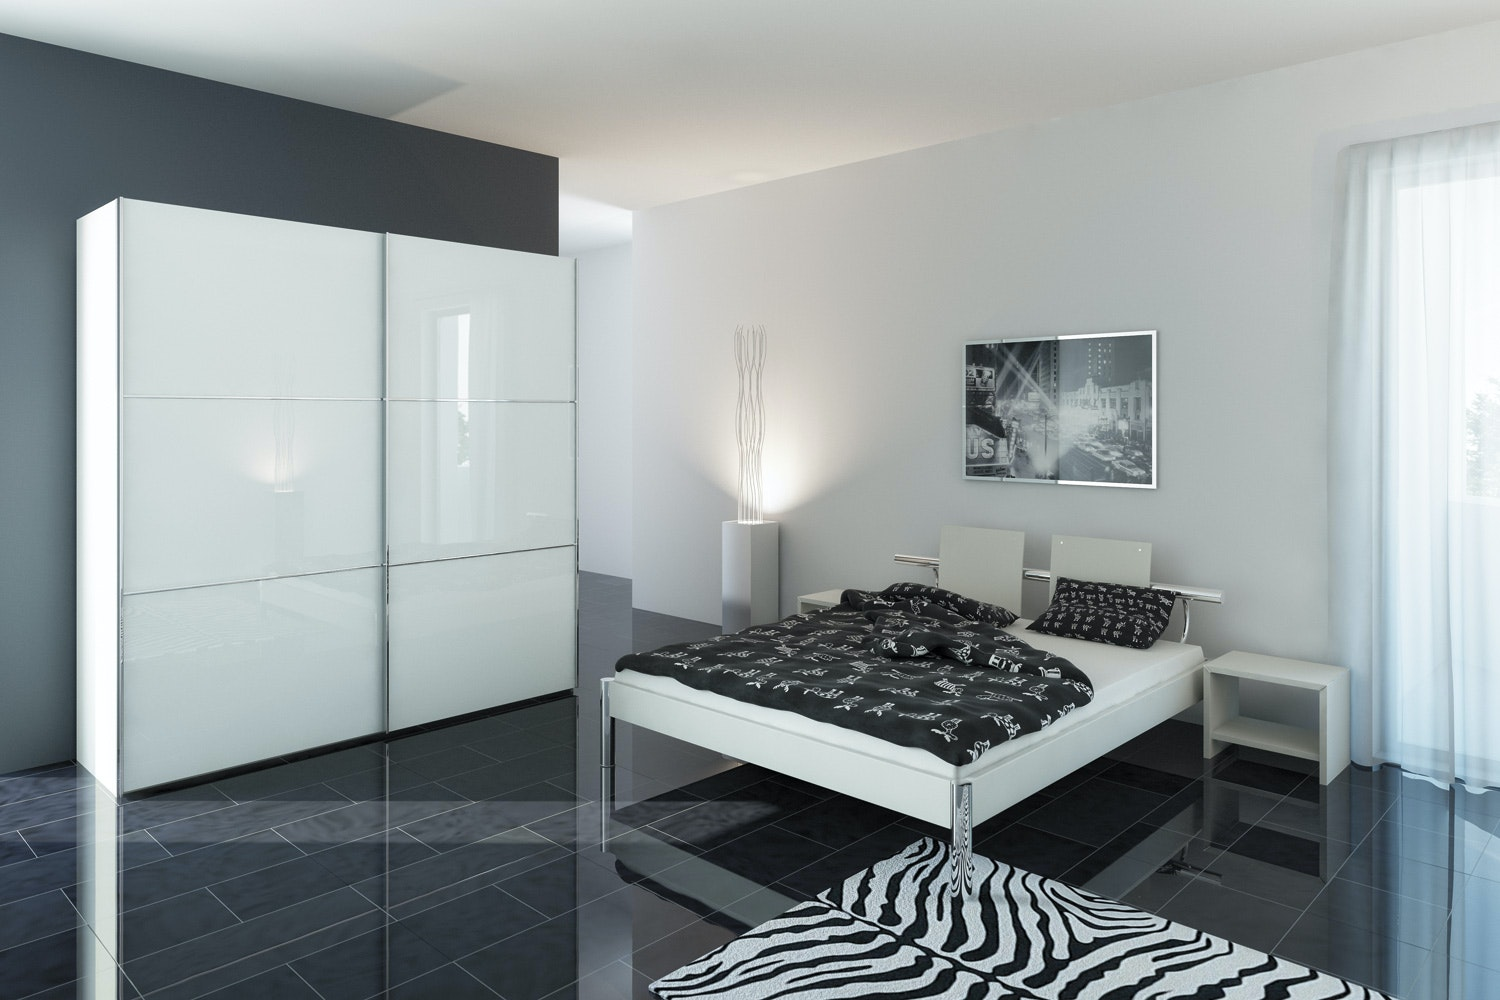 Jutzler Slideline Wardrobe | White Glass